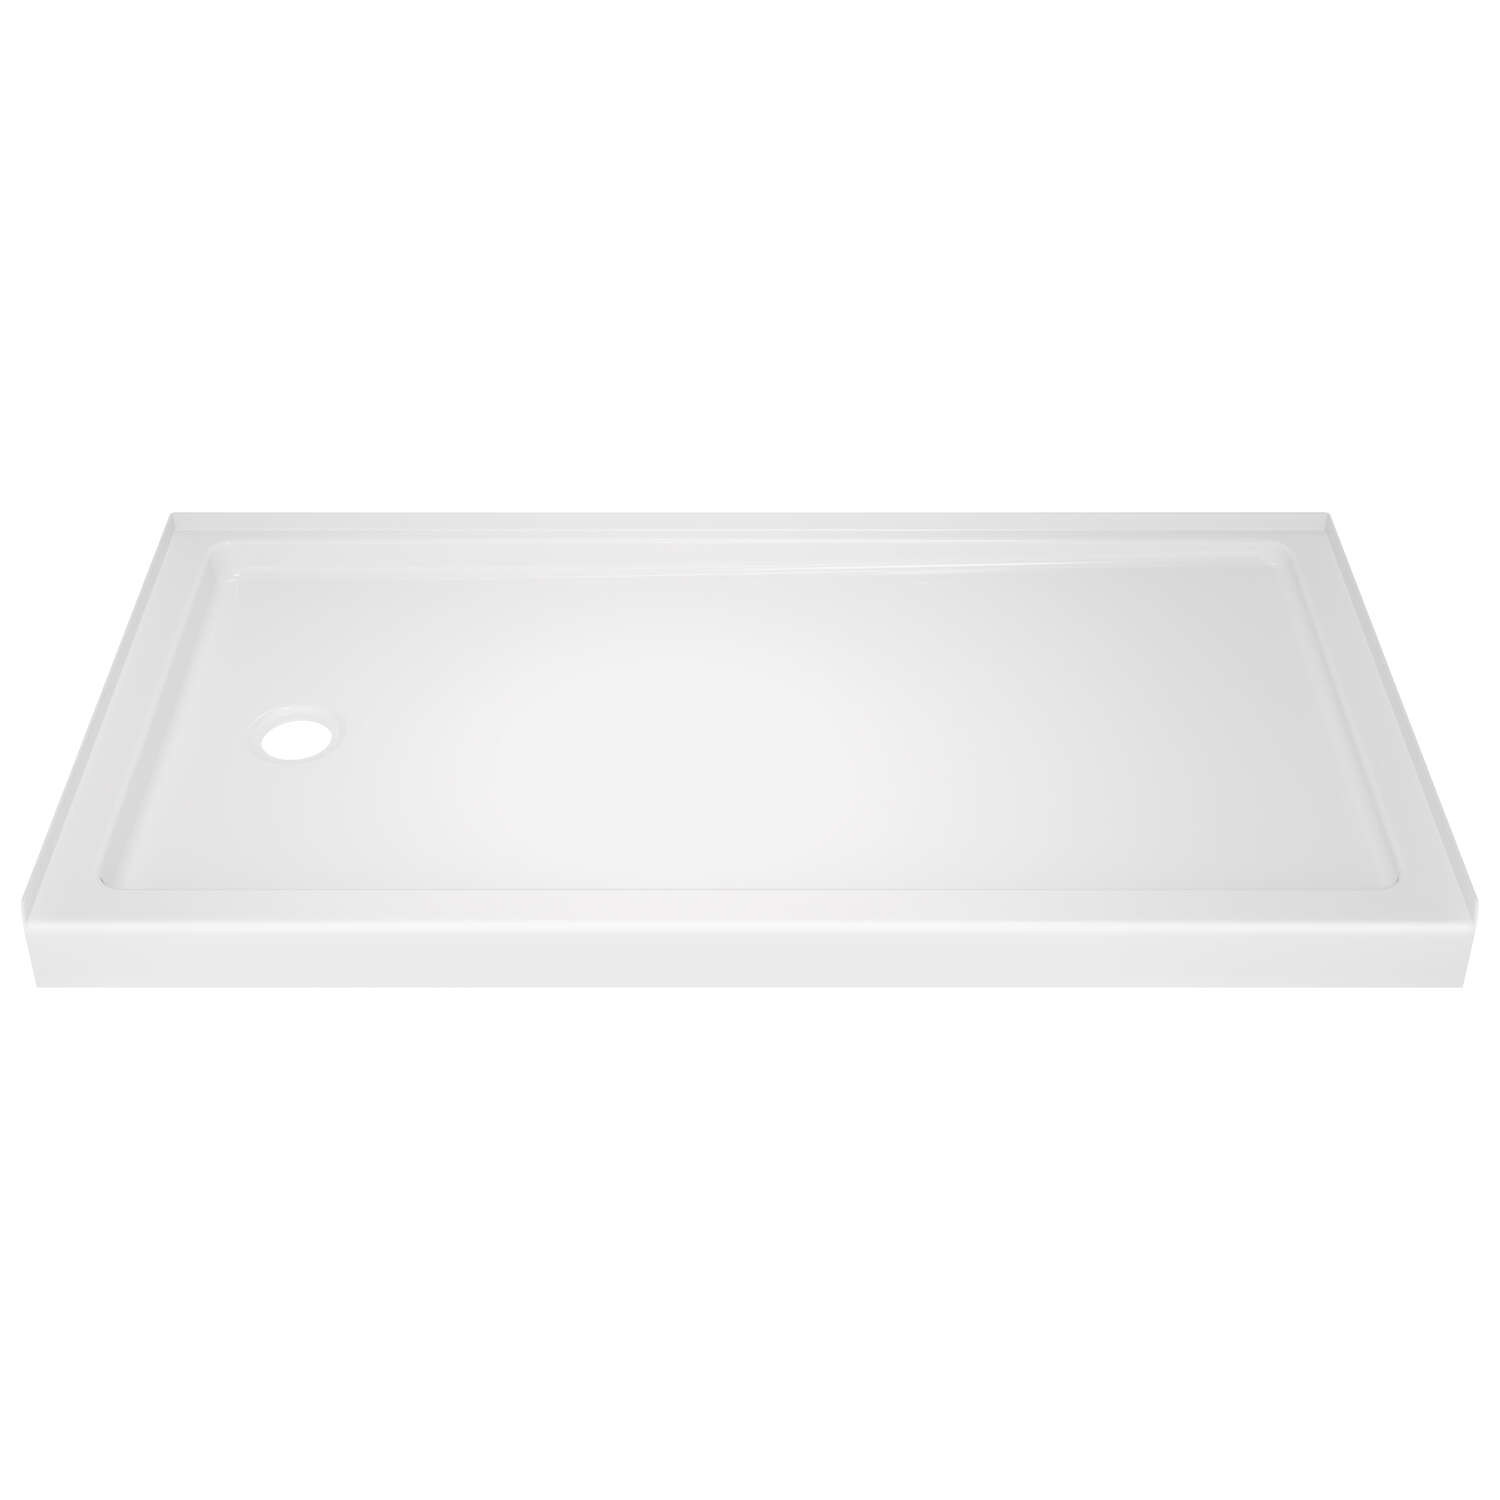 Delta Bathing System  Classic  3-1/2 in. H x 60 in. W x 32 in. L White  Shower Base